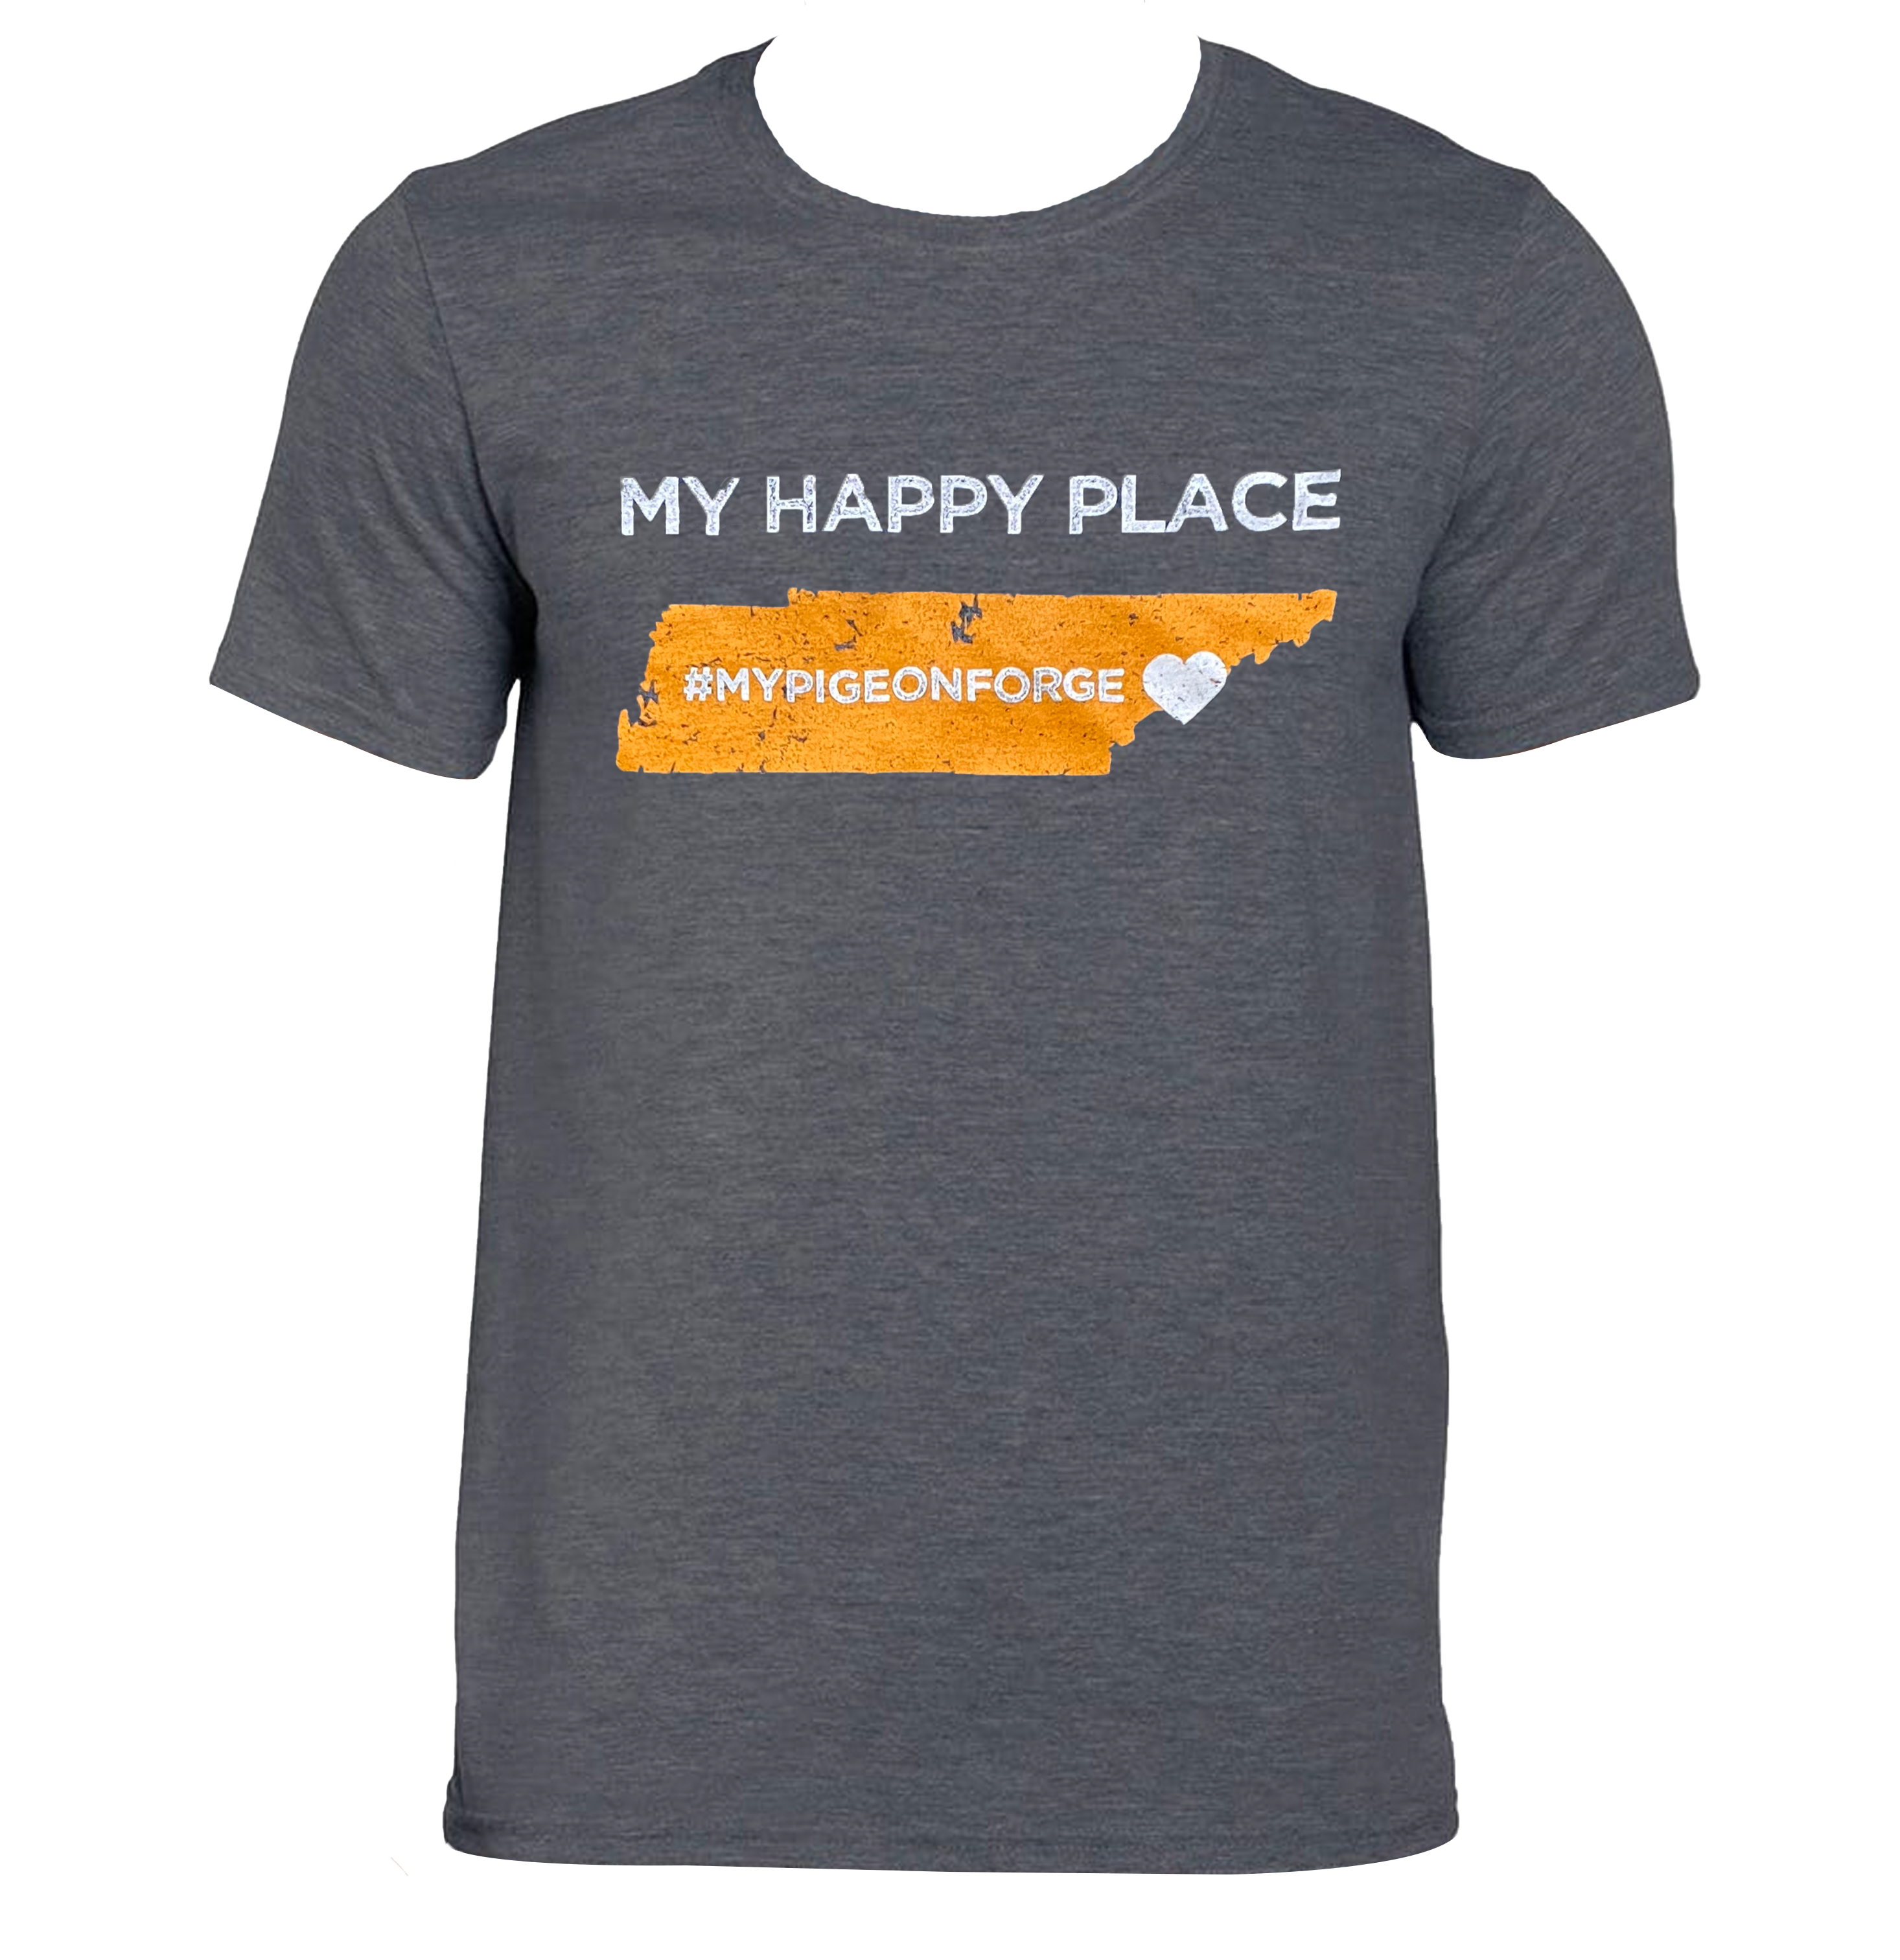 My Happy Place T-Shirt: S